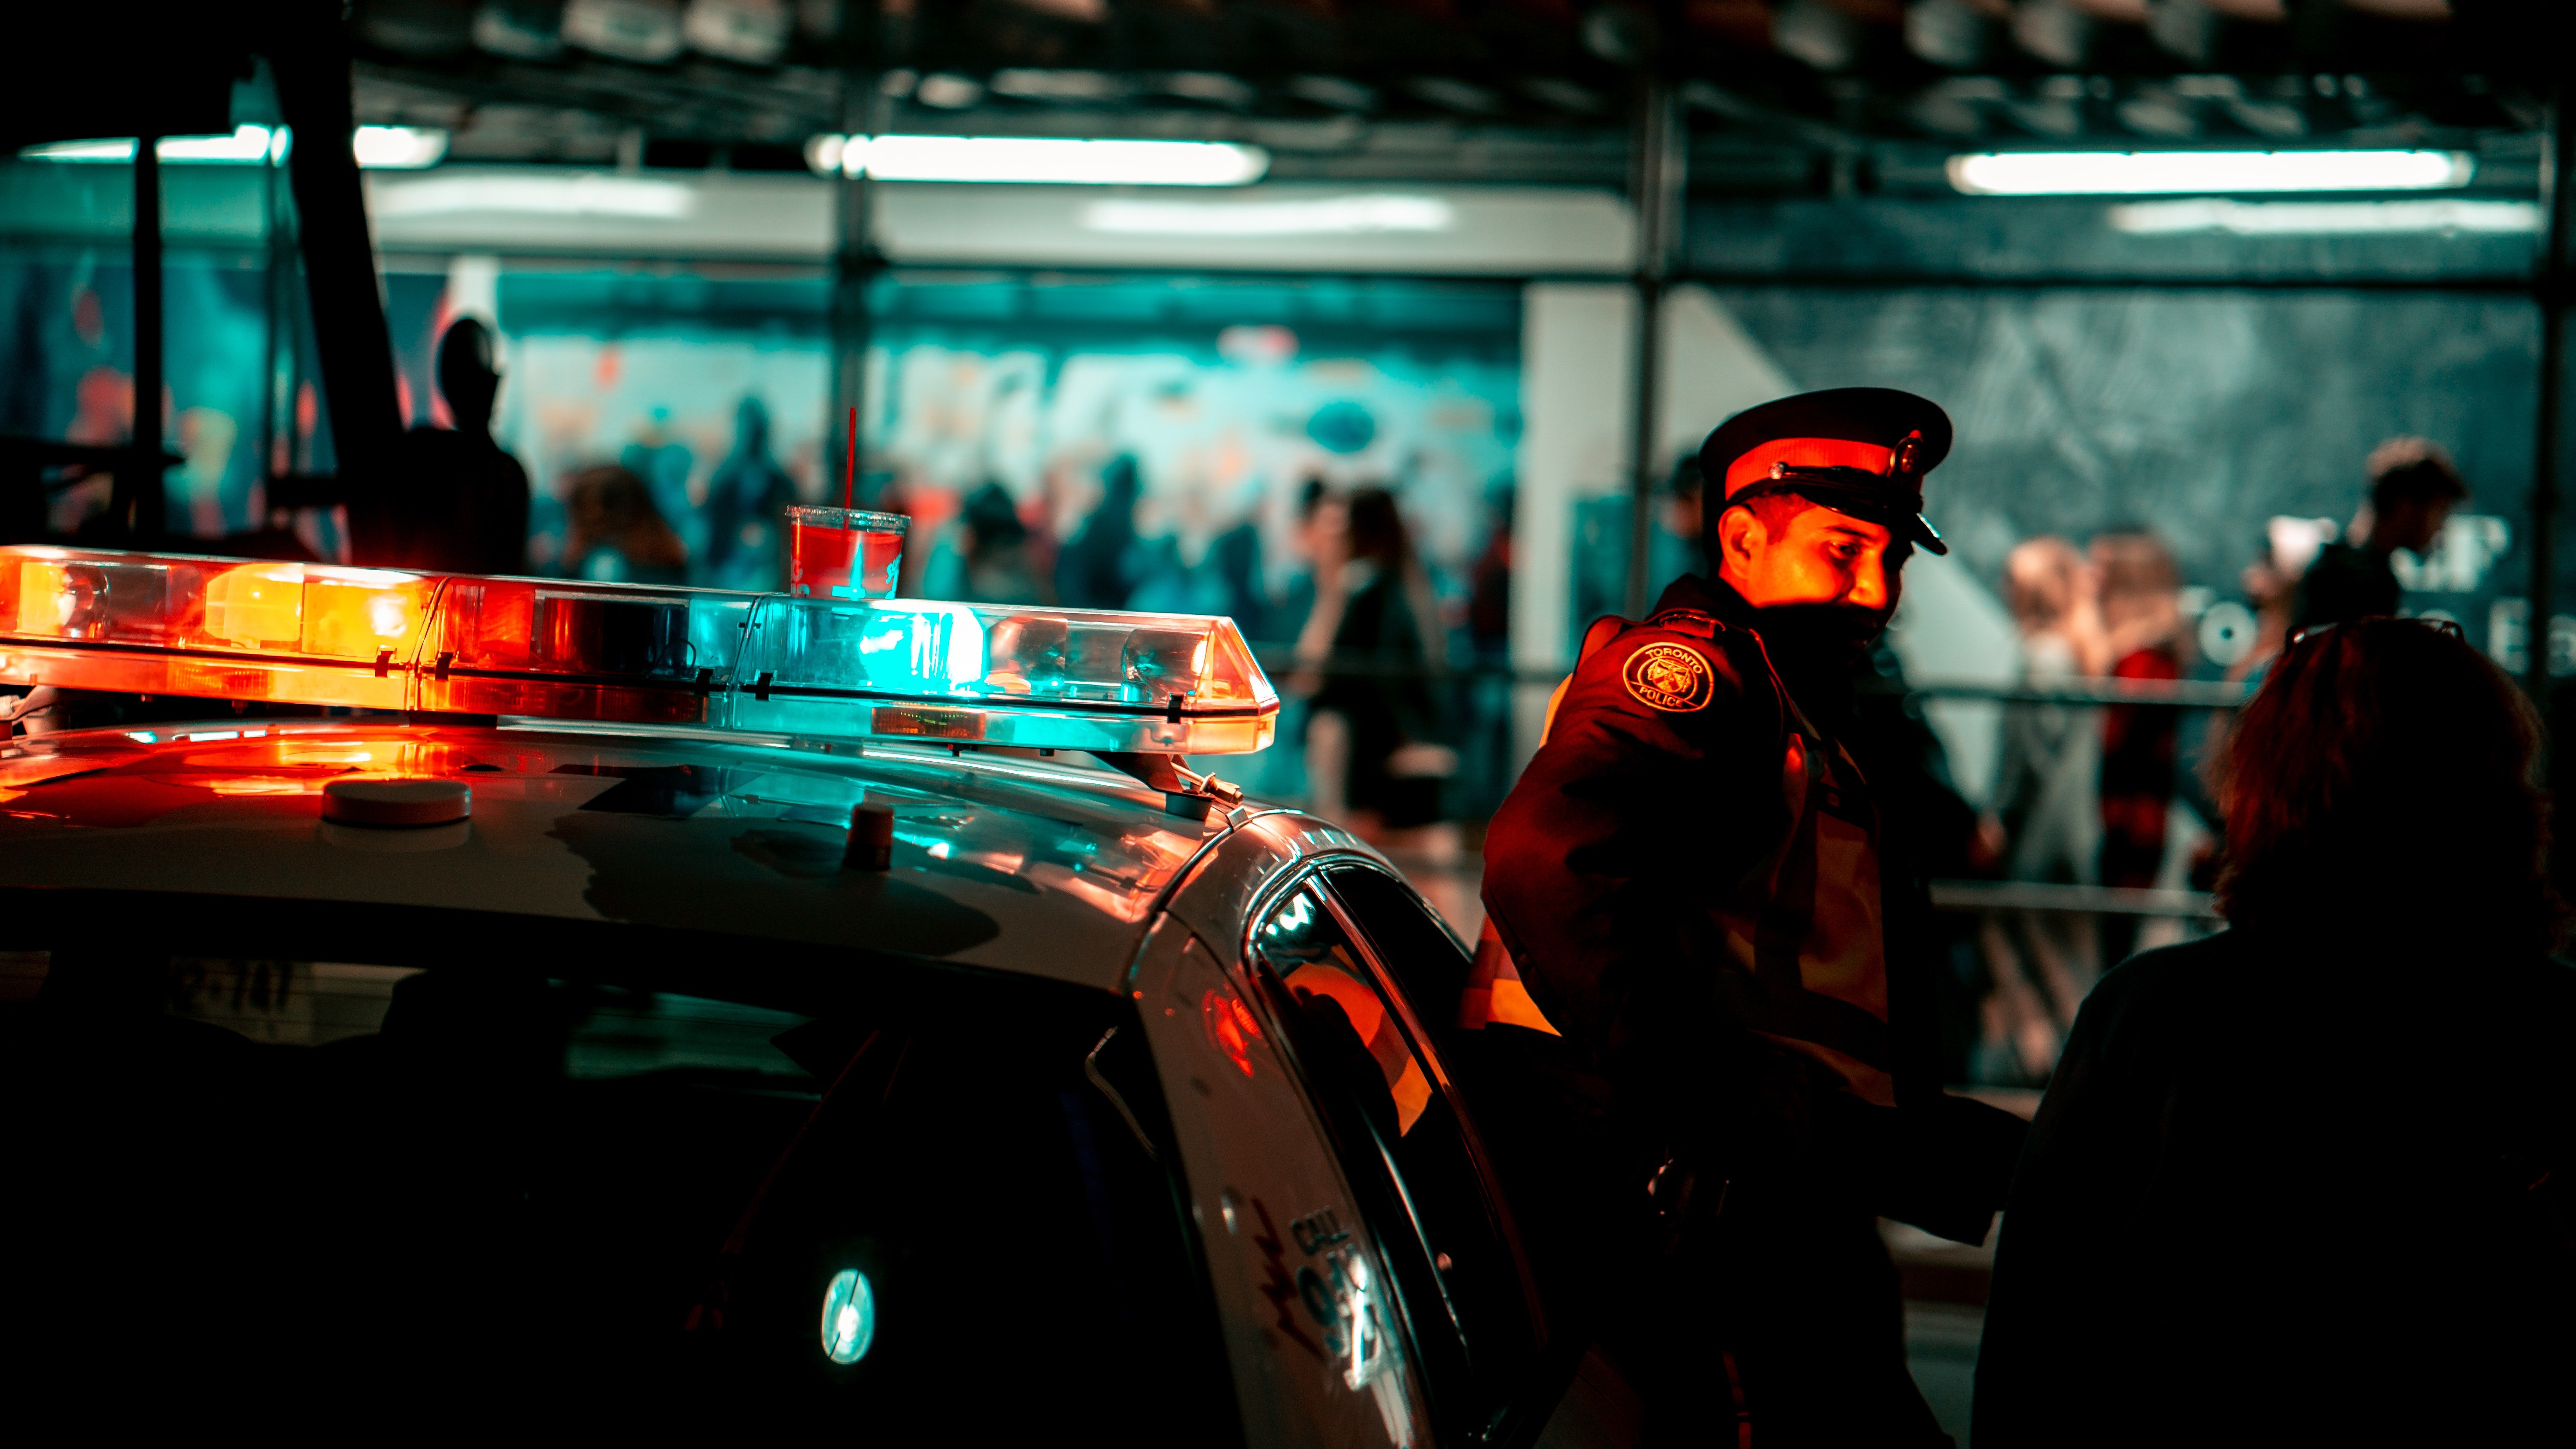 Pictured - An officer standing next to a police vehicle | Source: Pexels